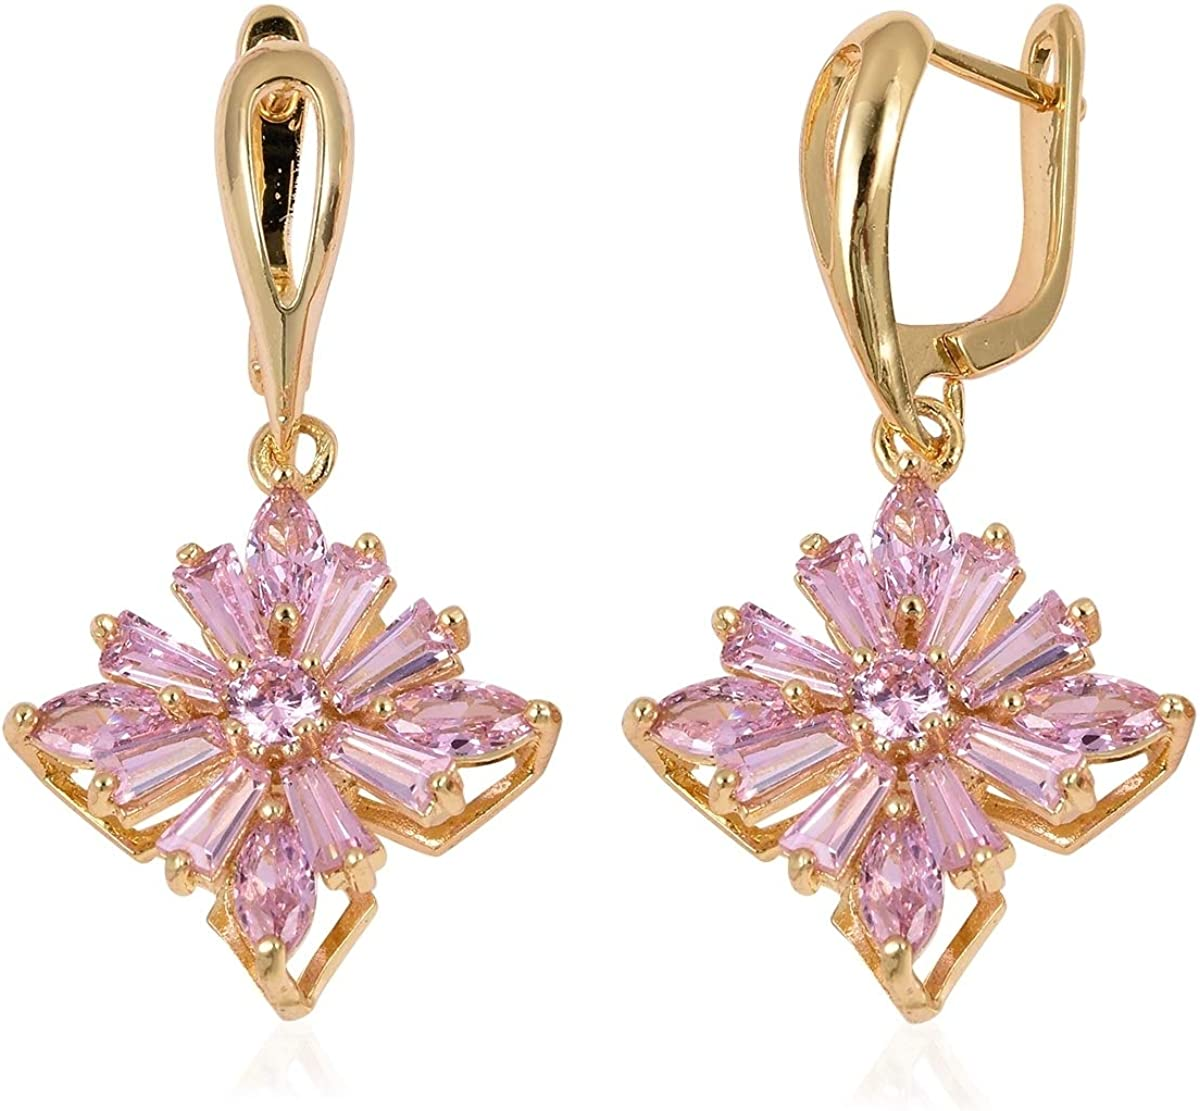 Shop LC Princess Cut Pink Cubic Zirconia Flower Floral Drop Dangle Earrings Rose Gold Plated Fashion Unique Gifts for Women Jewelry 4.1 ct Unique Gifts for Women